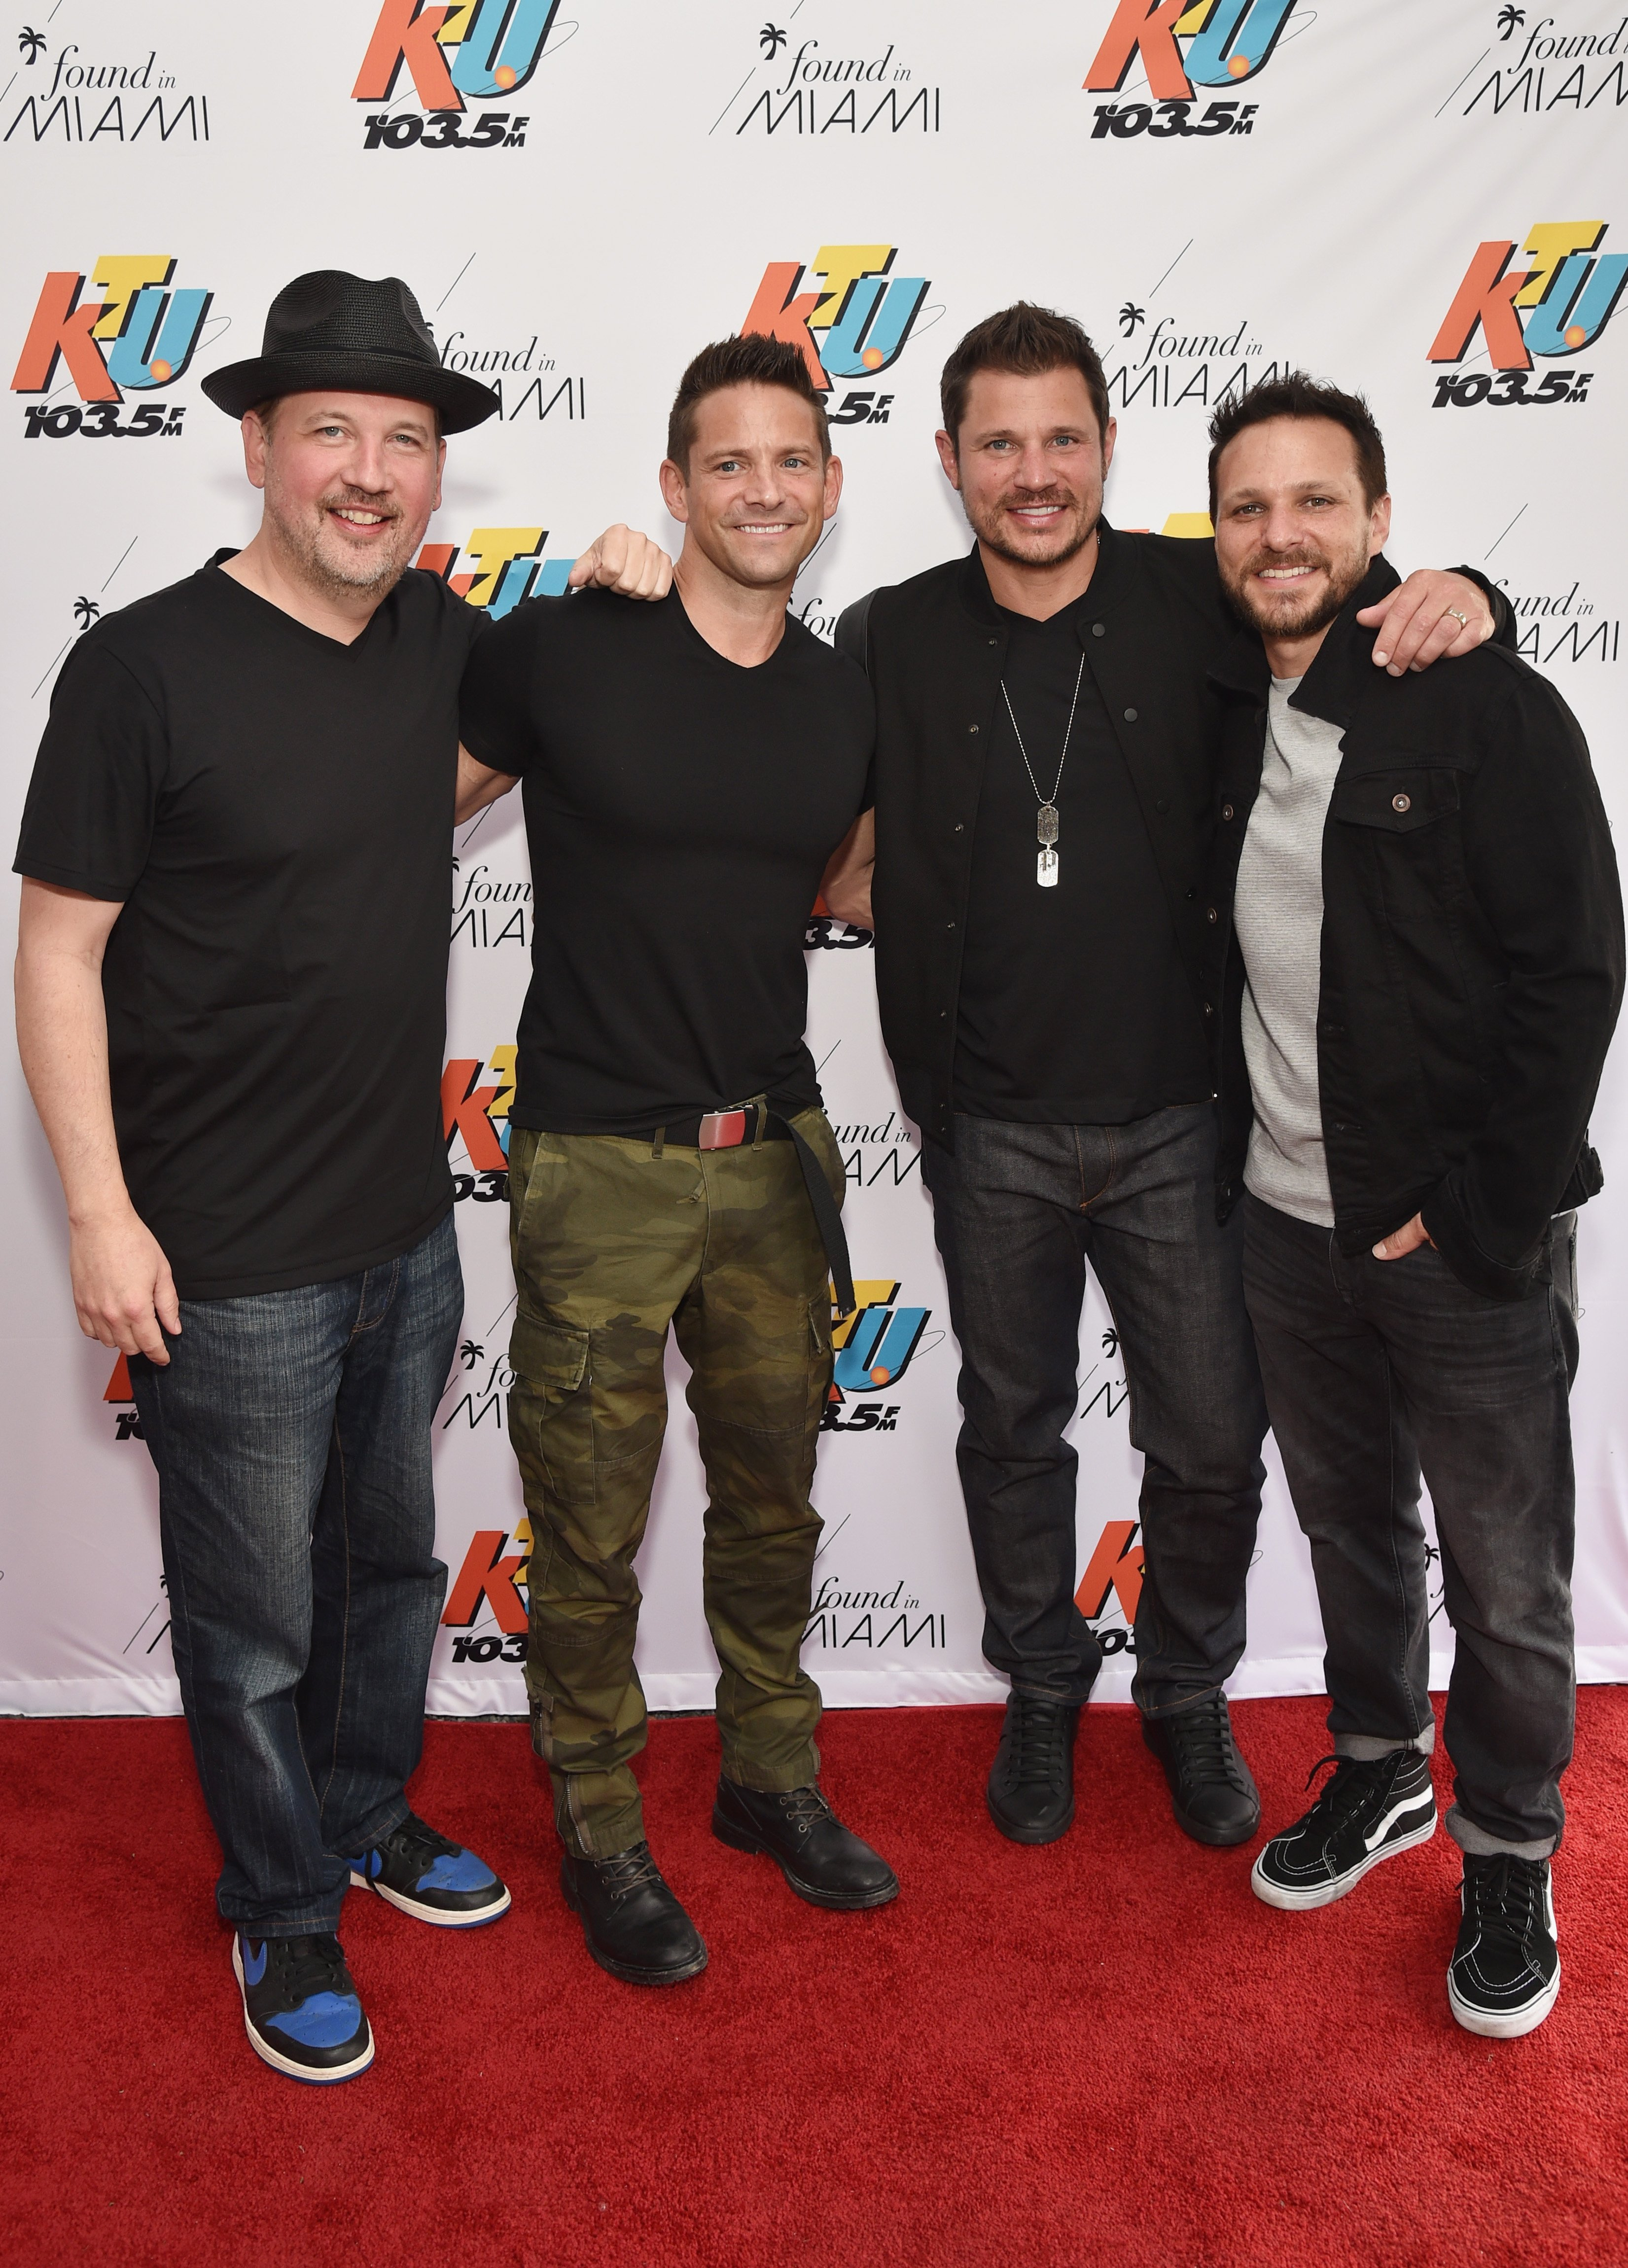 Justin Jeffre, Jeff Timmons, Nick Lachey and Drew Lachey of 98 Degrees attend 103.5 KTU's KTUphoria on June 16, 2018, in Wantagh City. | Source: Getty Images.